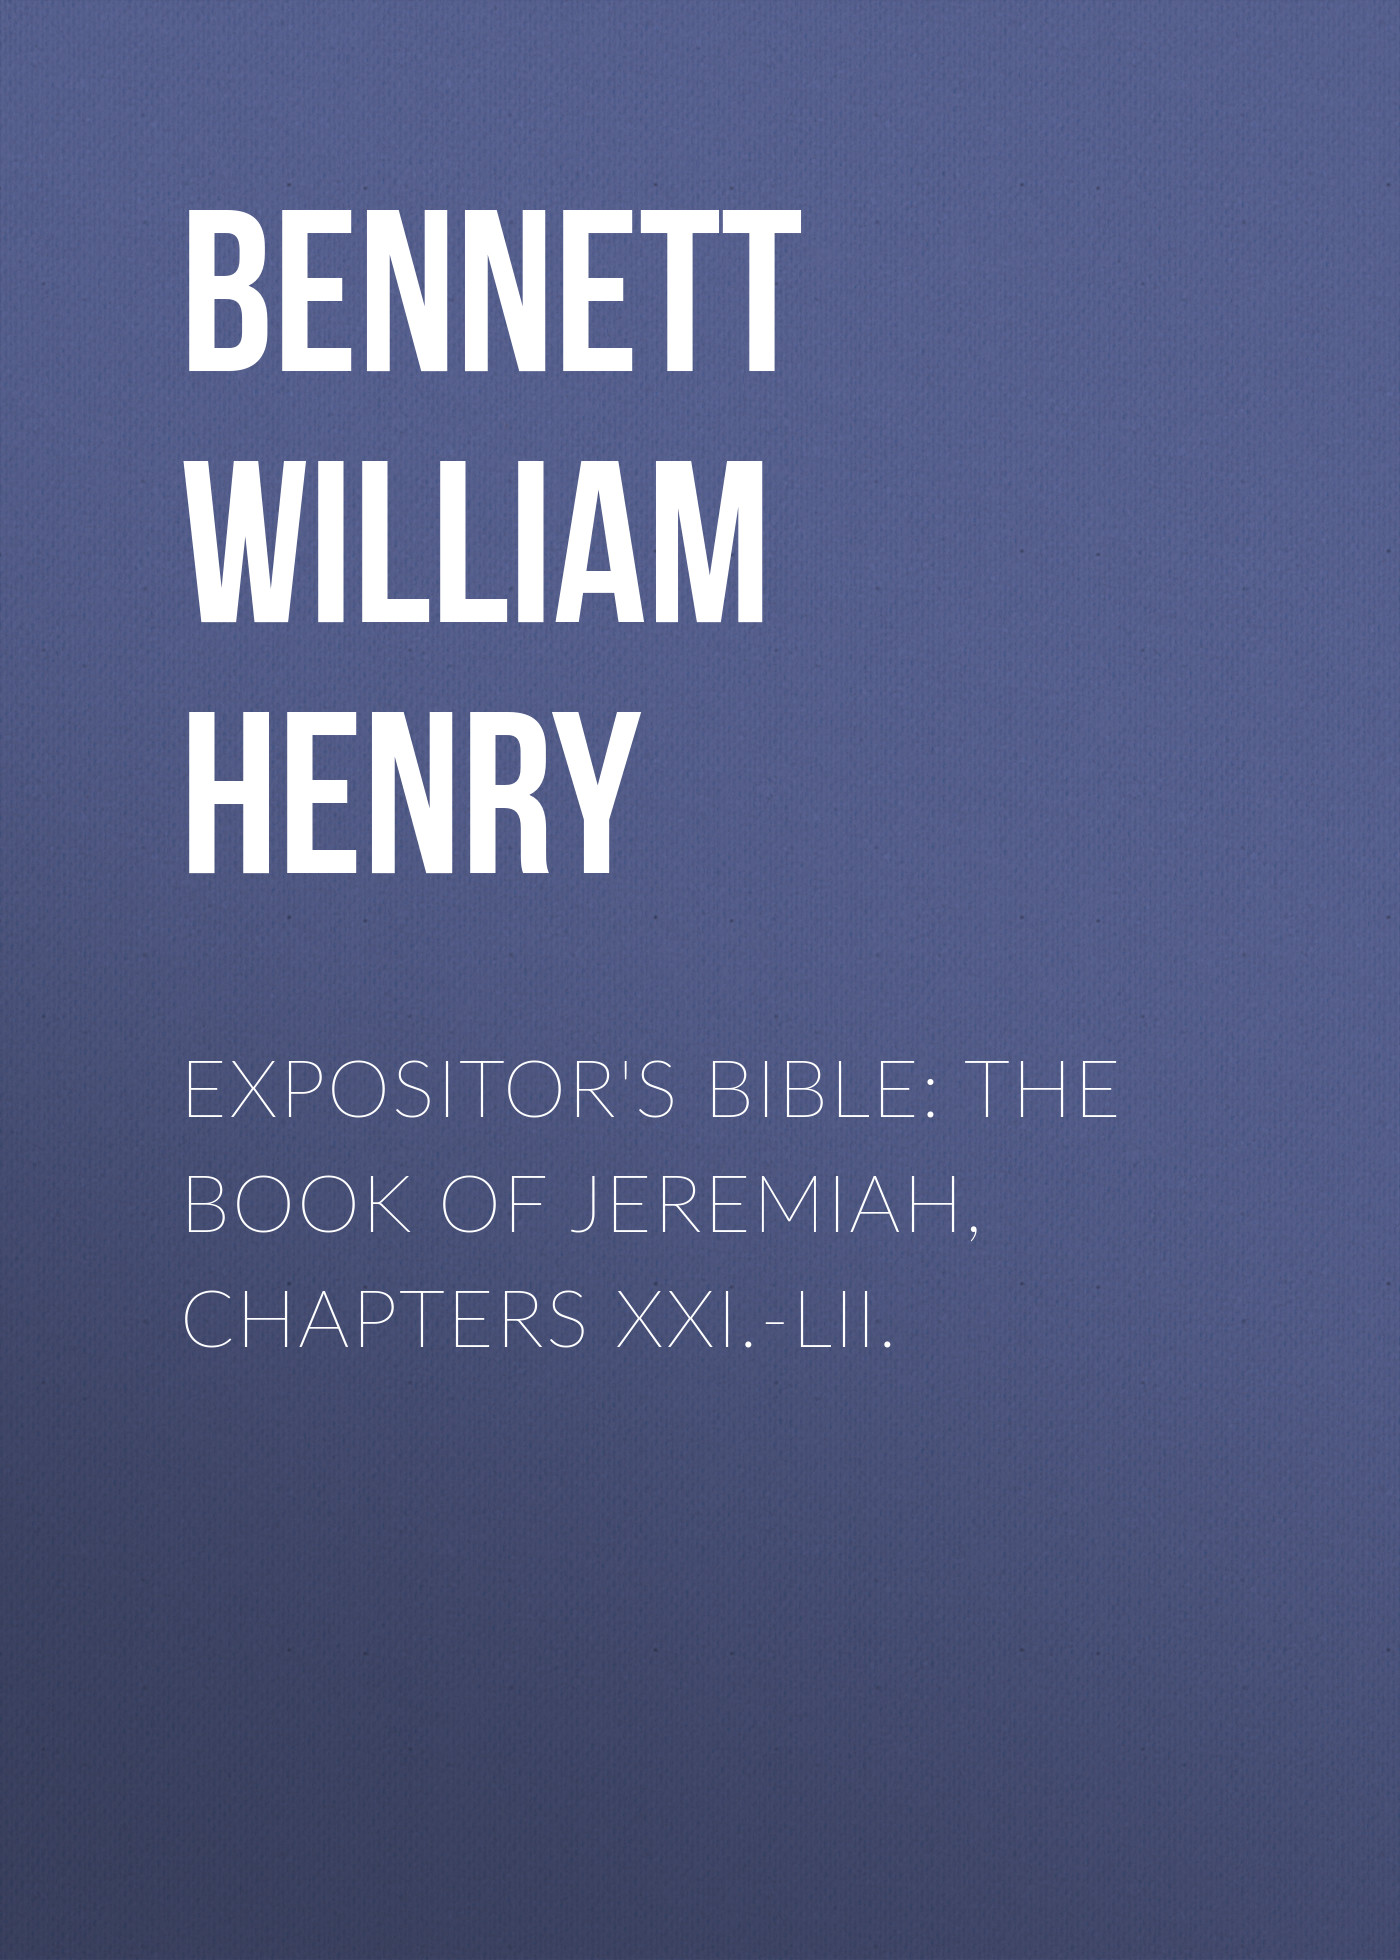 Bennett William Henry Expositor's Bible: The Book of Jeremiah, Chapters XXI.-LII. liitokala lii 402 lii 202 lii 100 lii s1 charger can be charged 1 2v 3 7v aa aaa 26650 18650 16340 lithium battery smart